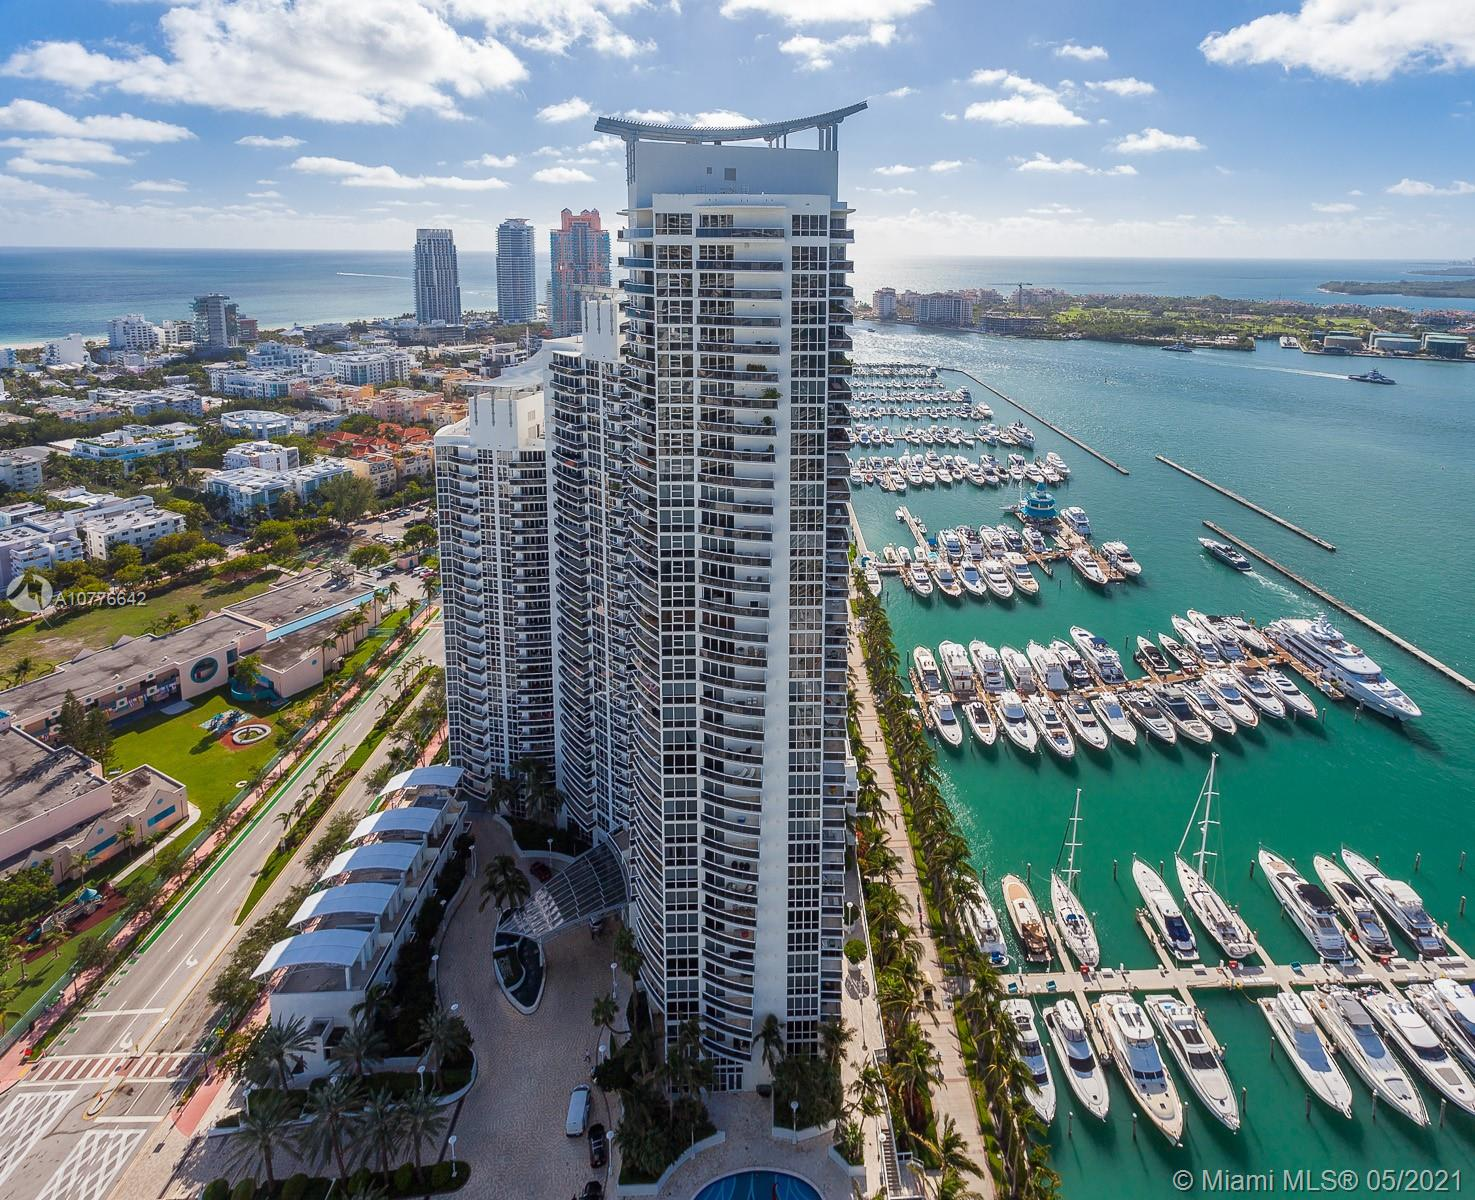 Stunning view of all of Miami and the beach from this home in the sky; lower penthouse of the largest floor plan at the Murano Grande in the Sofi (South of Fifth) district. Originally 4 bedroom, now converted to 3 Bedrooms + Den + maid's quarters. Formal living and dining with amazing bay/skyline and Fisher Island views. Large kitchen with family room and dining/breakfast area with vast ocean and city views. Full service condominium with on site restaurant on the pool deck and resort like amenities. Rented until June 2022 @ $18k per month